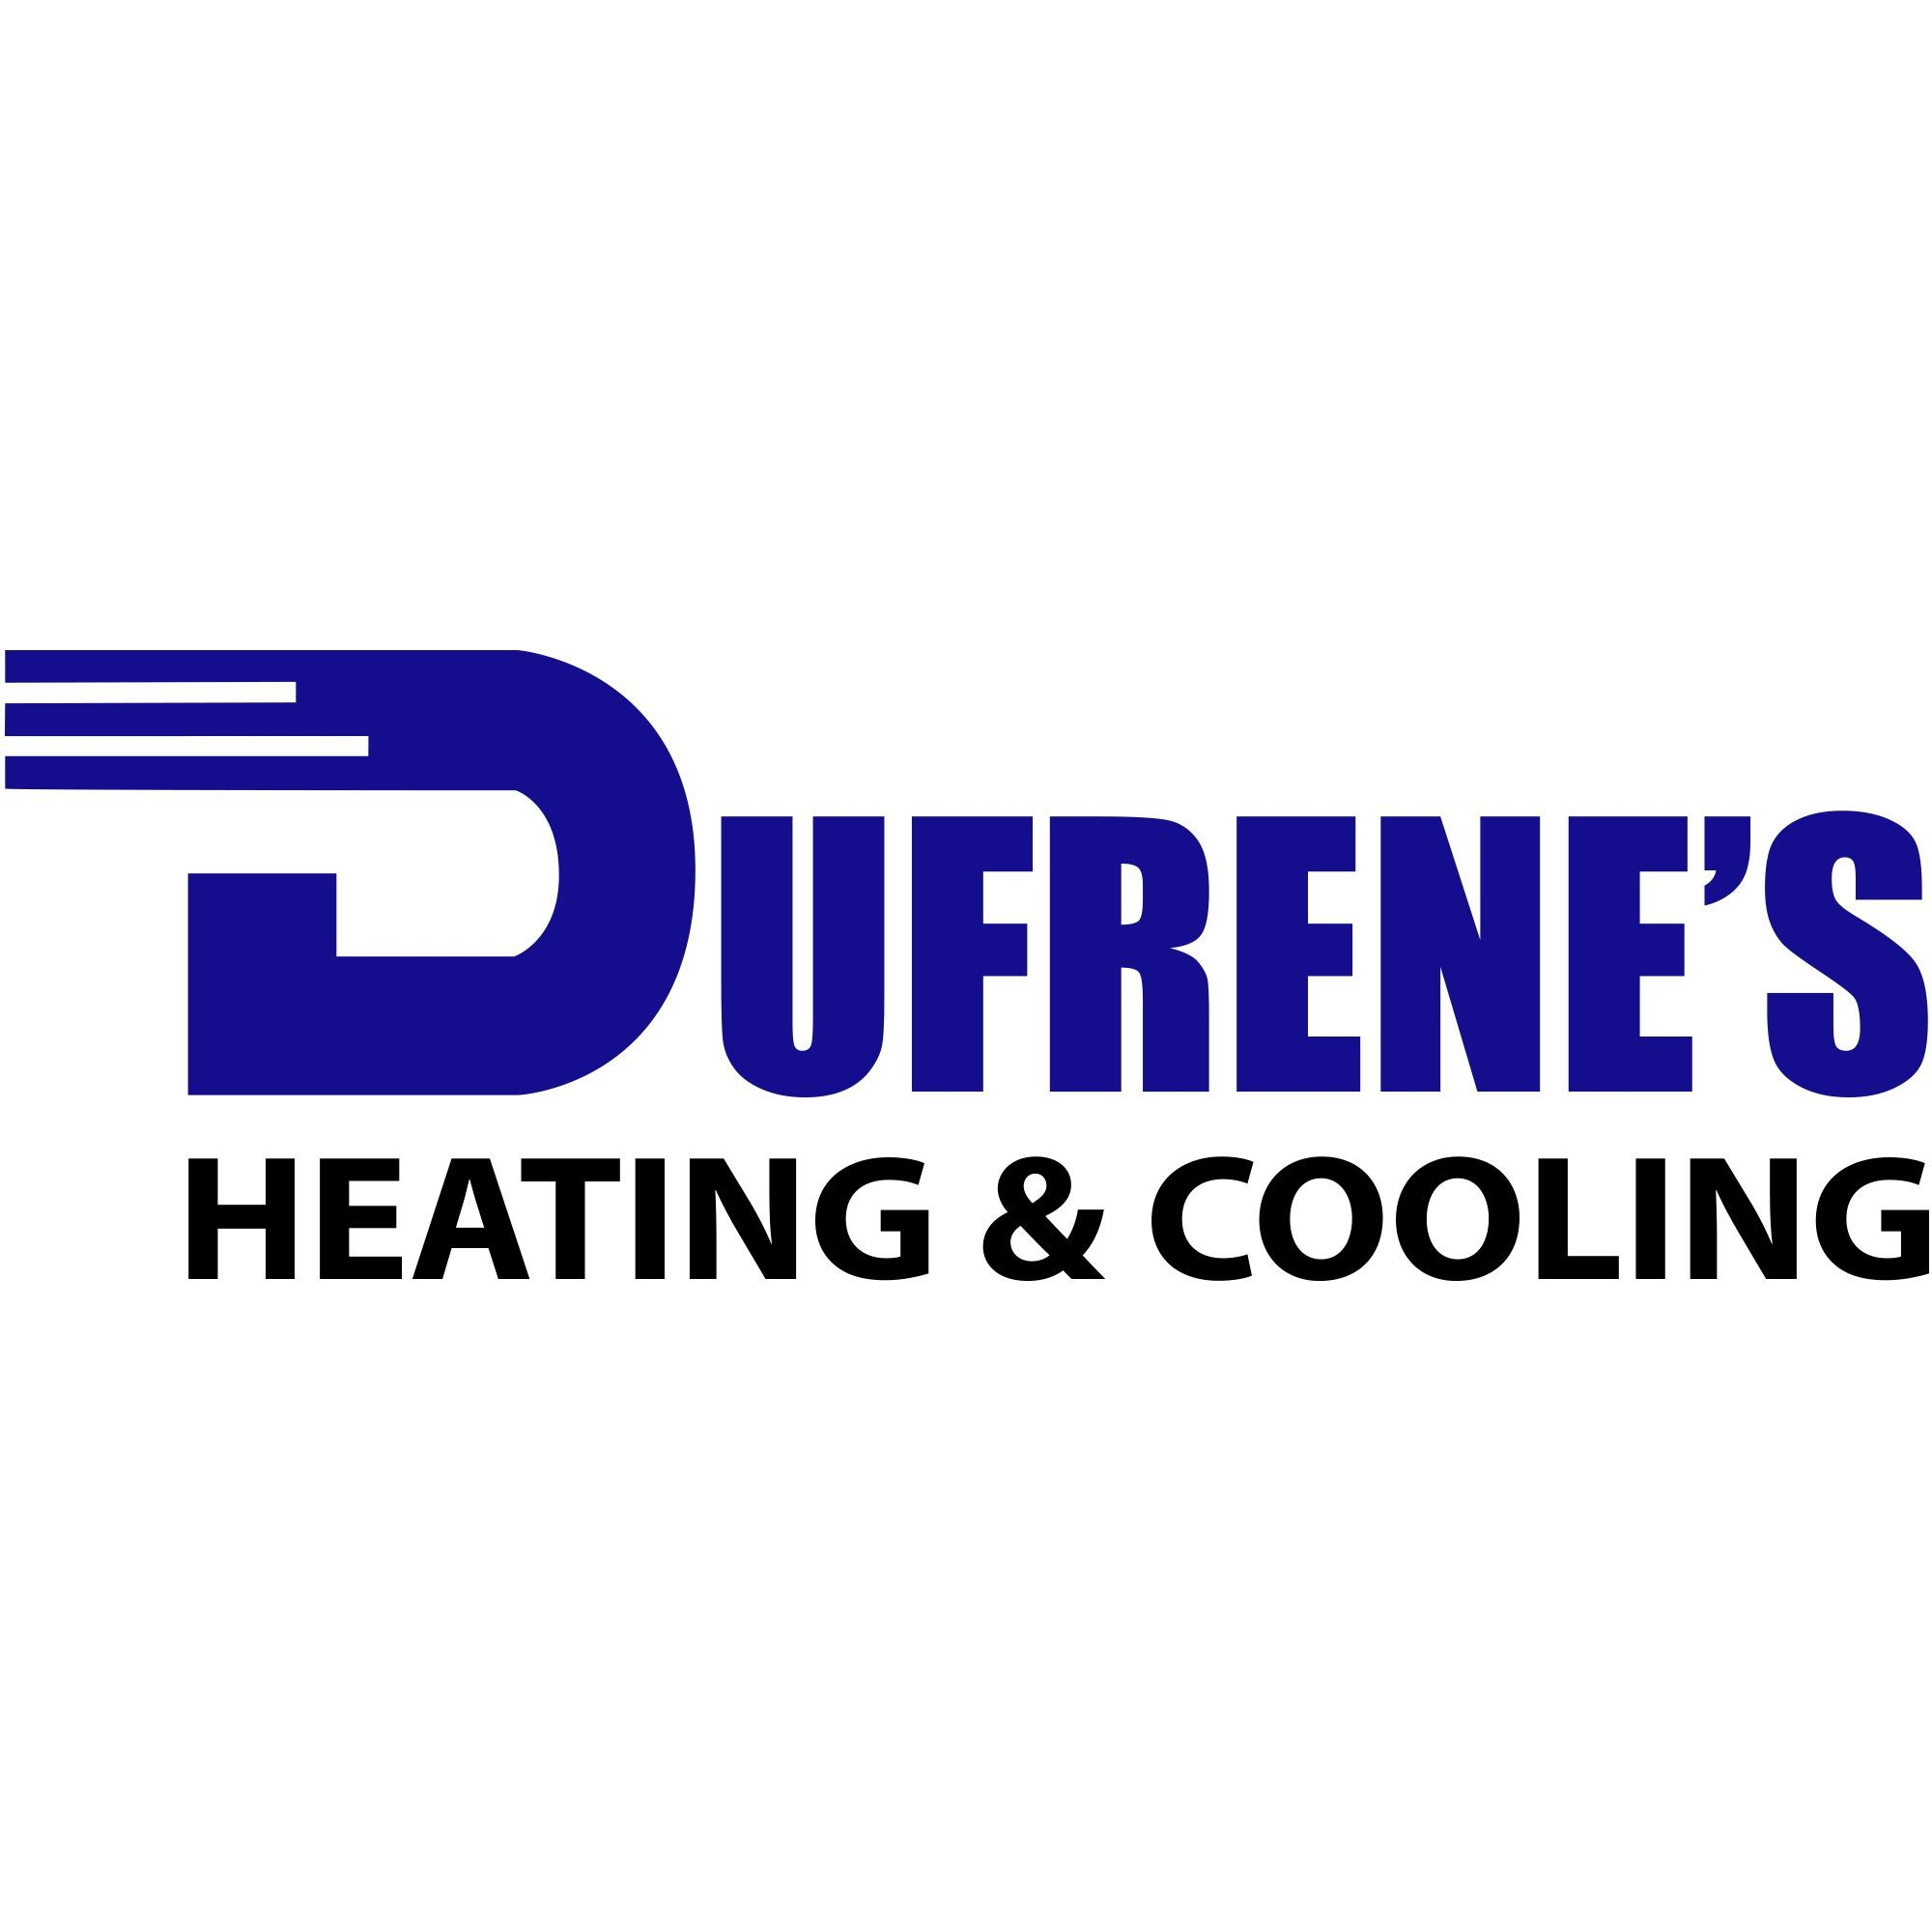 Dufrene's Heating & Cooling image 0